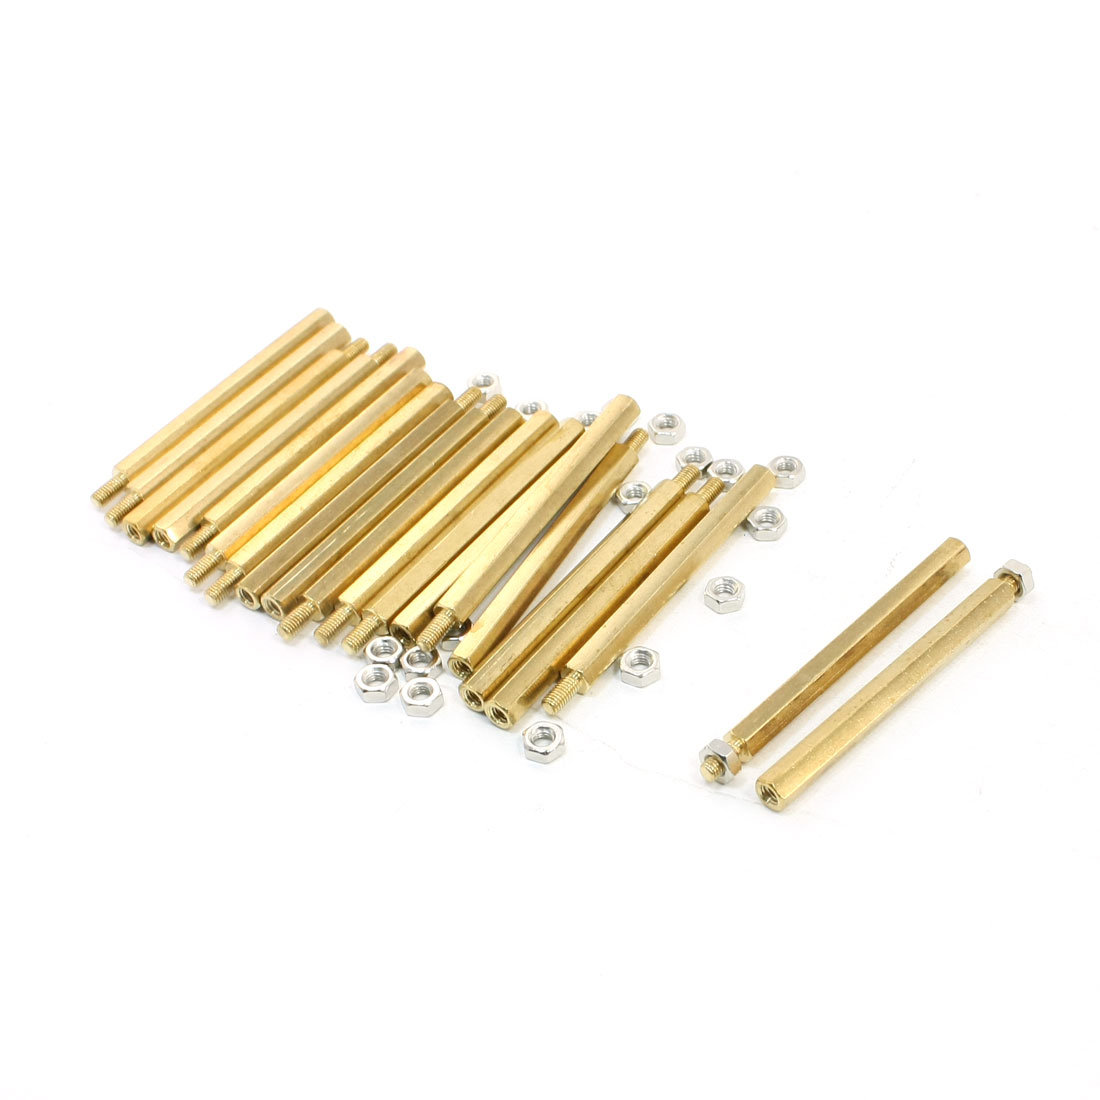 20Pcs M3x6mm Male to Female Thread Hex Standoff Spacer 50mm Body Length